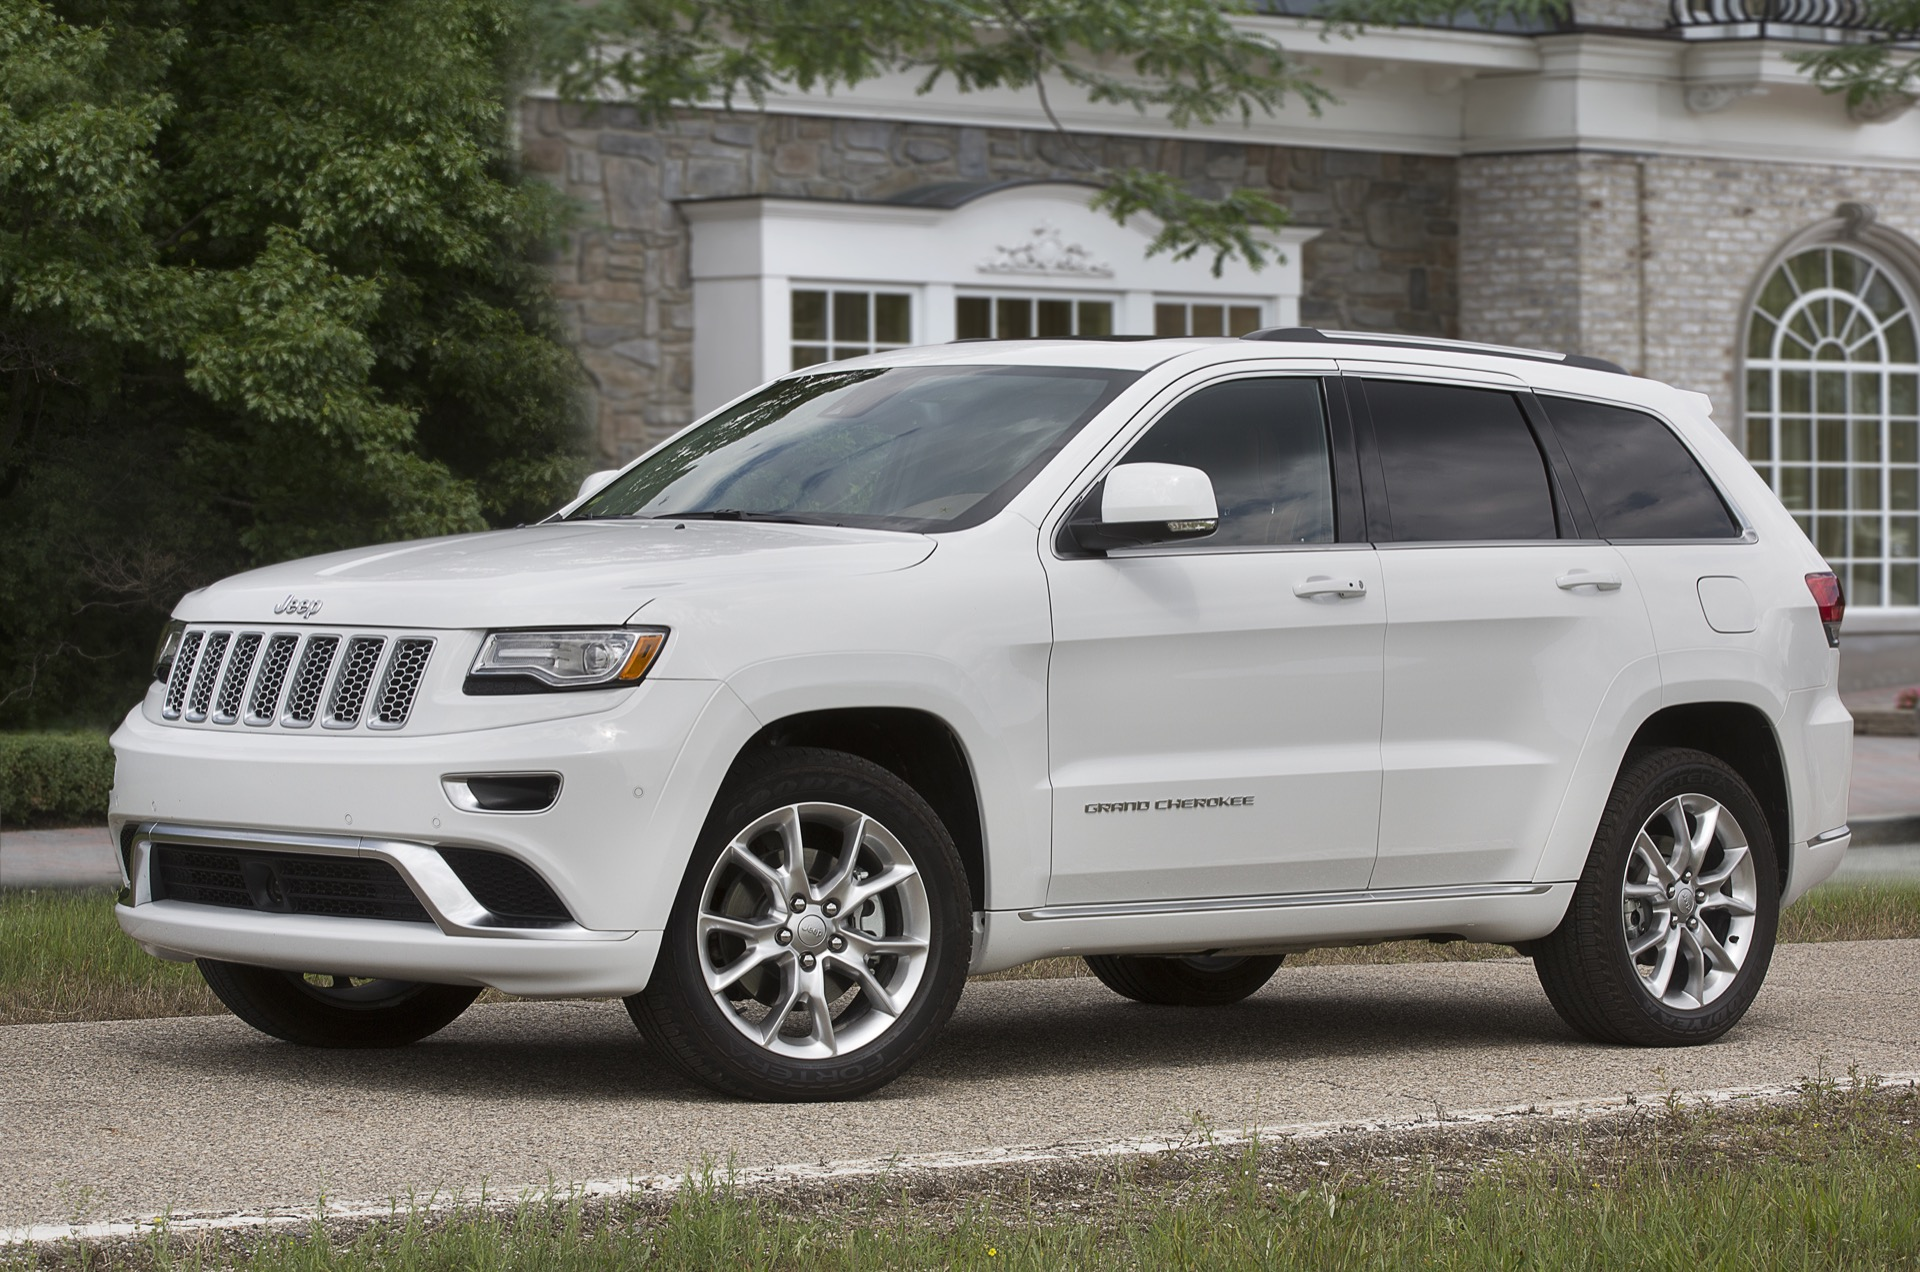 2016 jeep grand cherokee more power and mpgs less weight. Black Bedroom Furniture Sets. Home Design Ideas